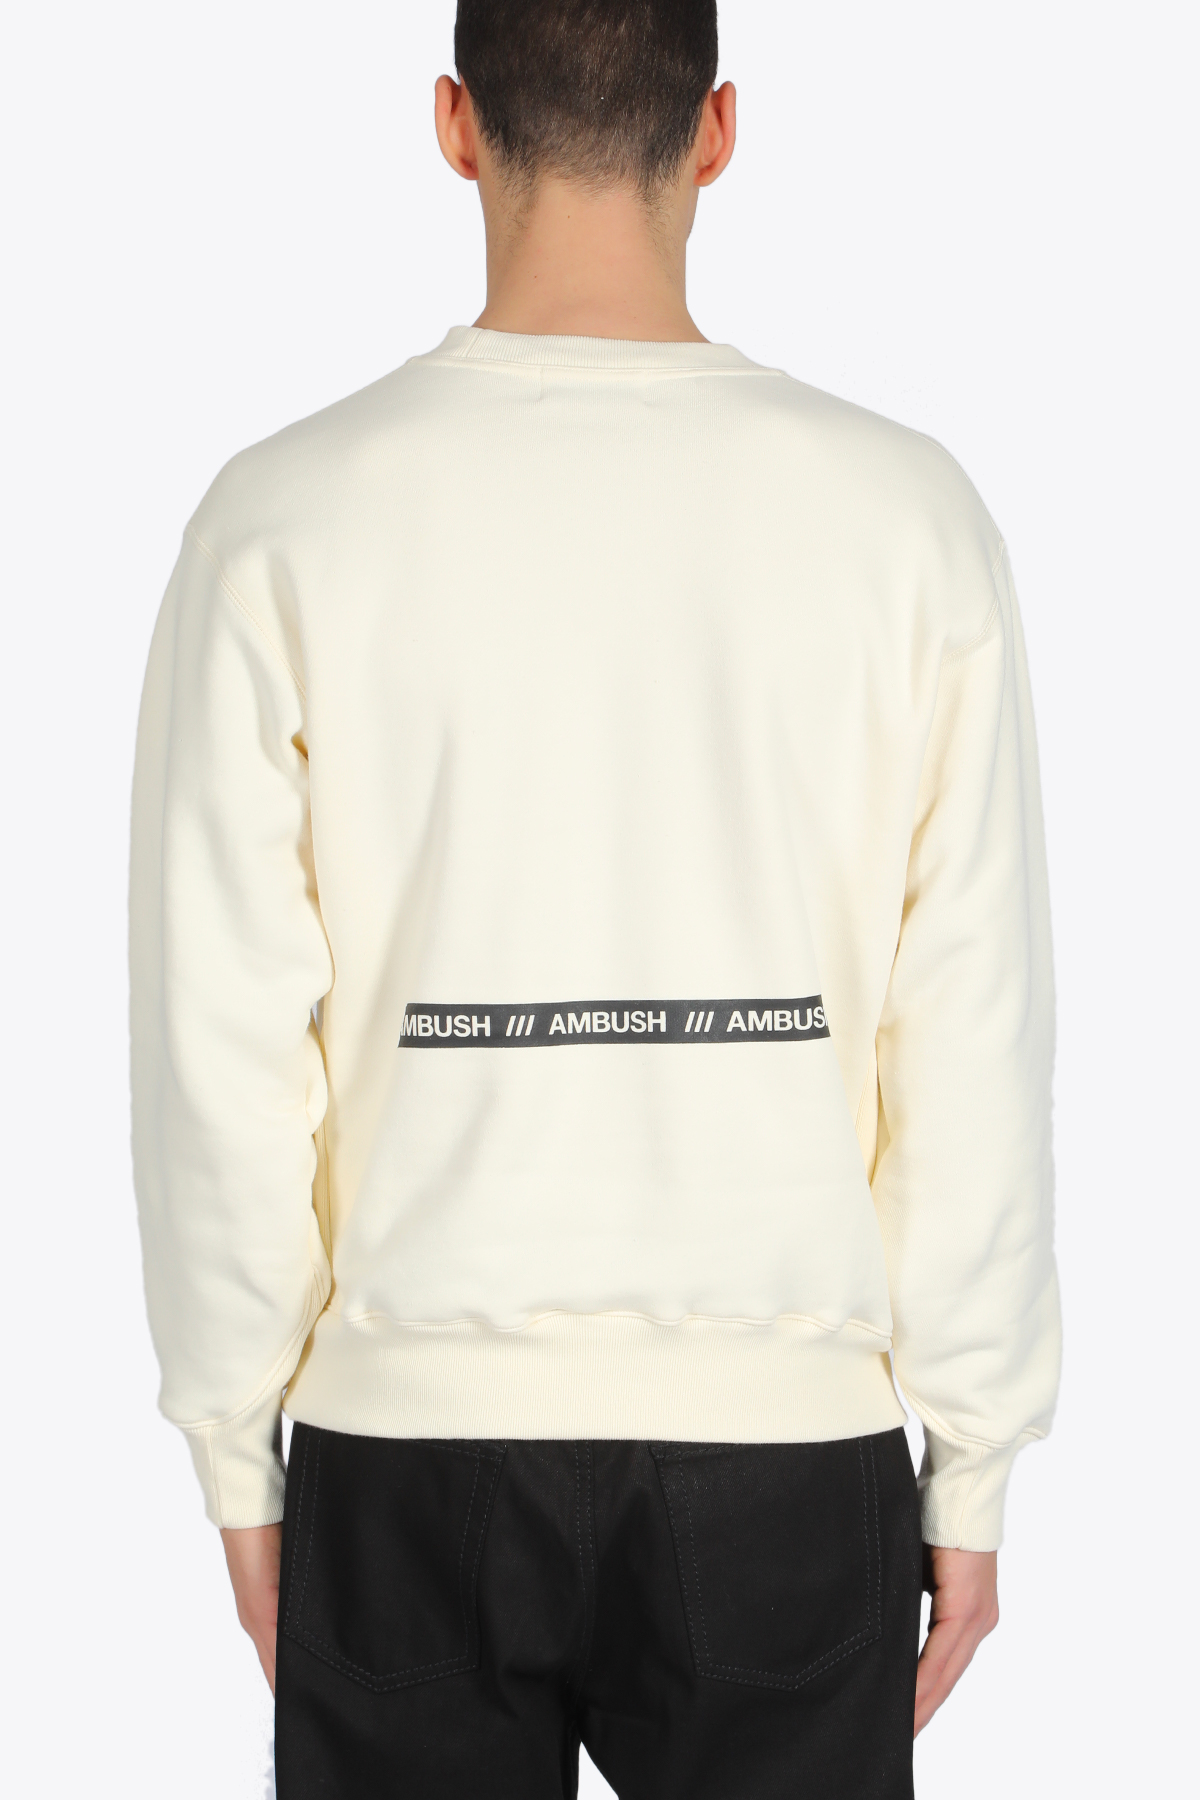 KNITTED NEW CREWNECK SWEATSHIRT AMBUSH | -108764232 | 12112067 KNITTED SHIRT NEW CREWNECK SWEAOFF WHITE